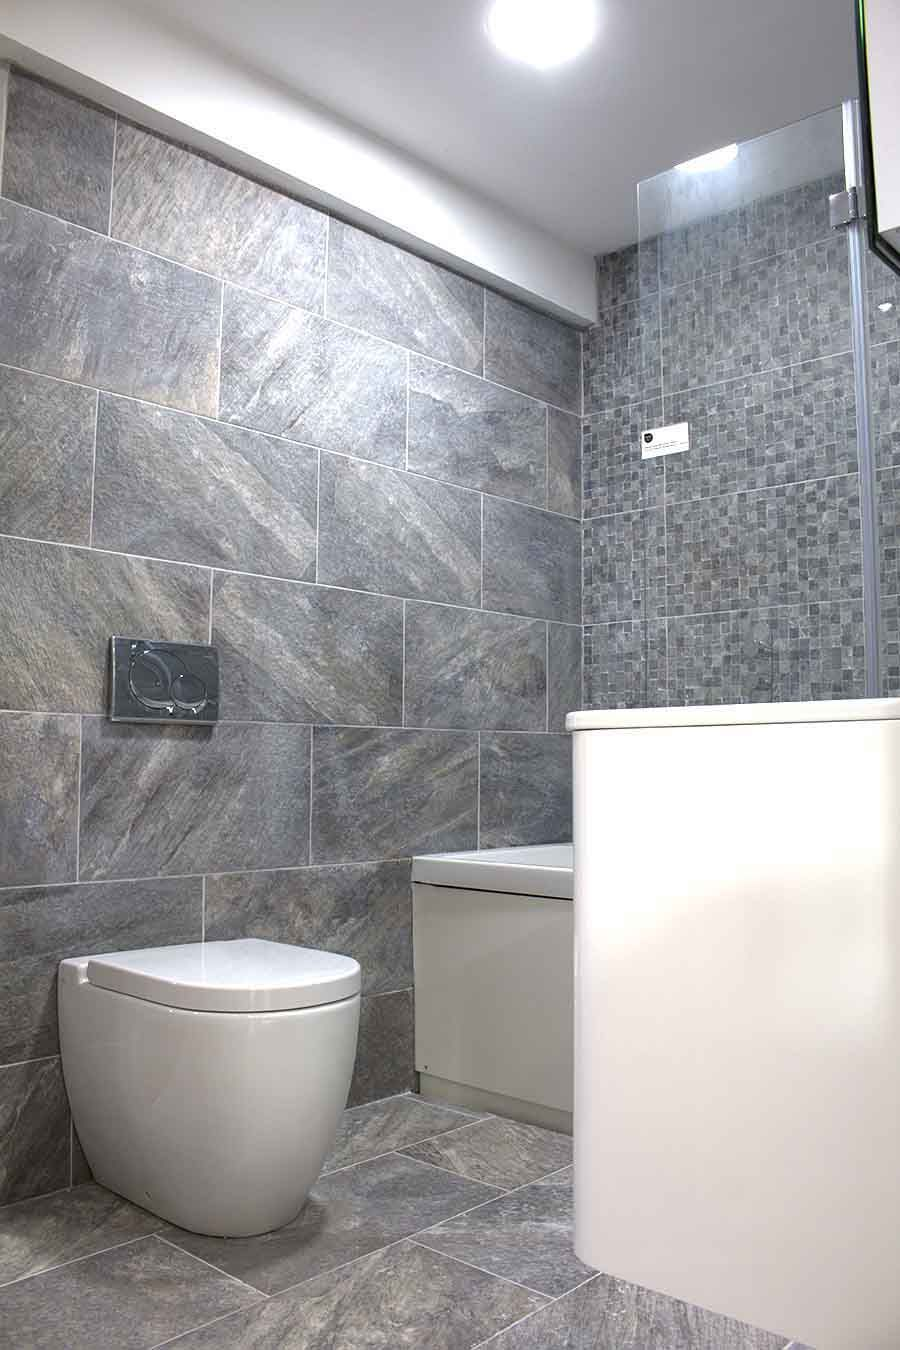 A modern bathroom display with stone effect porcelain tiles and